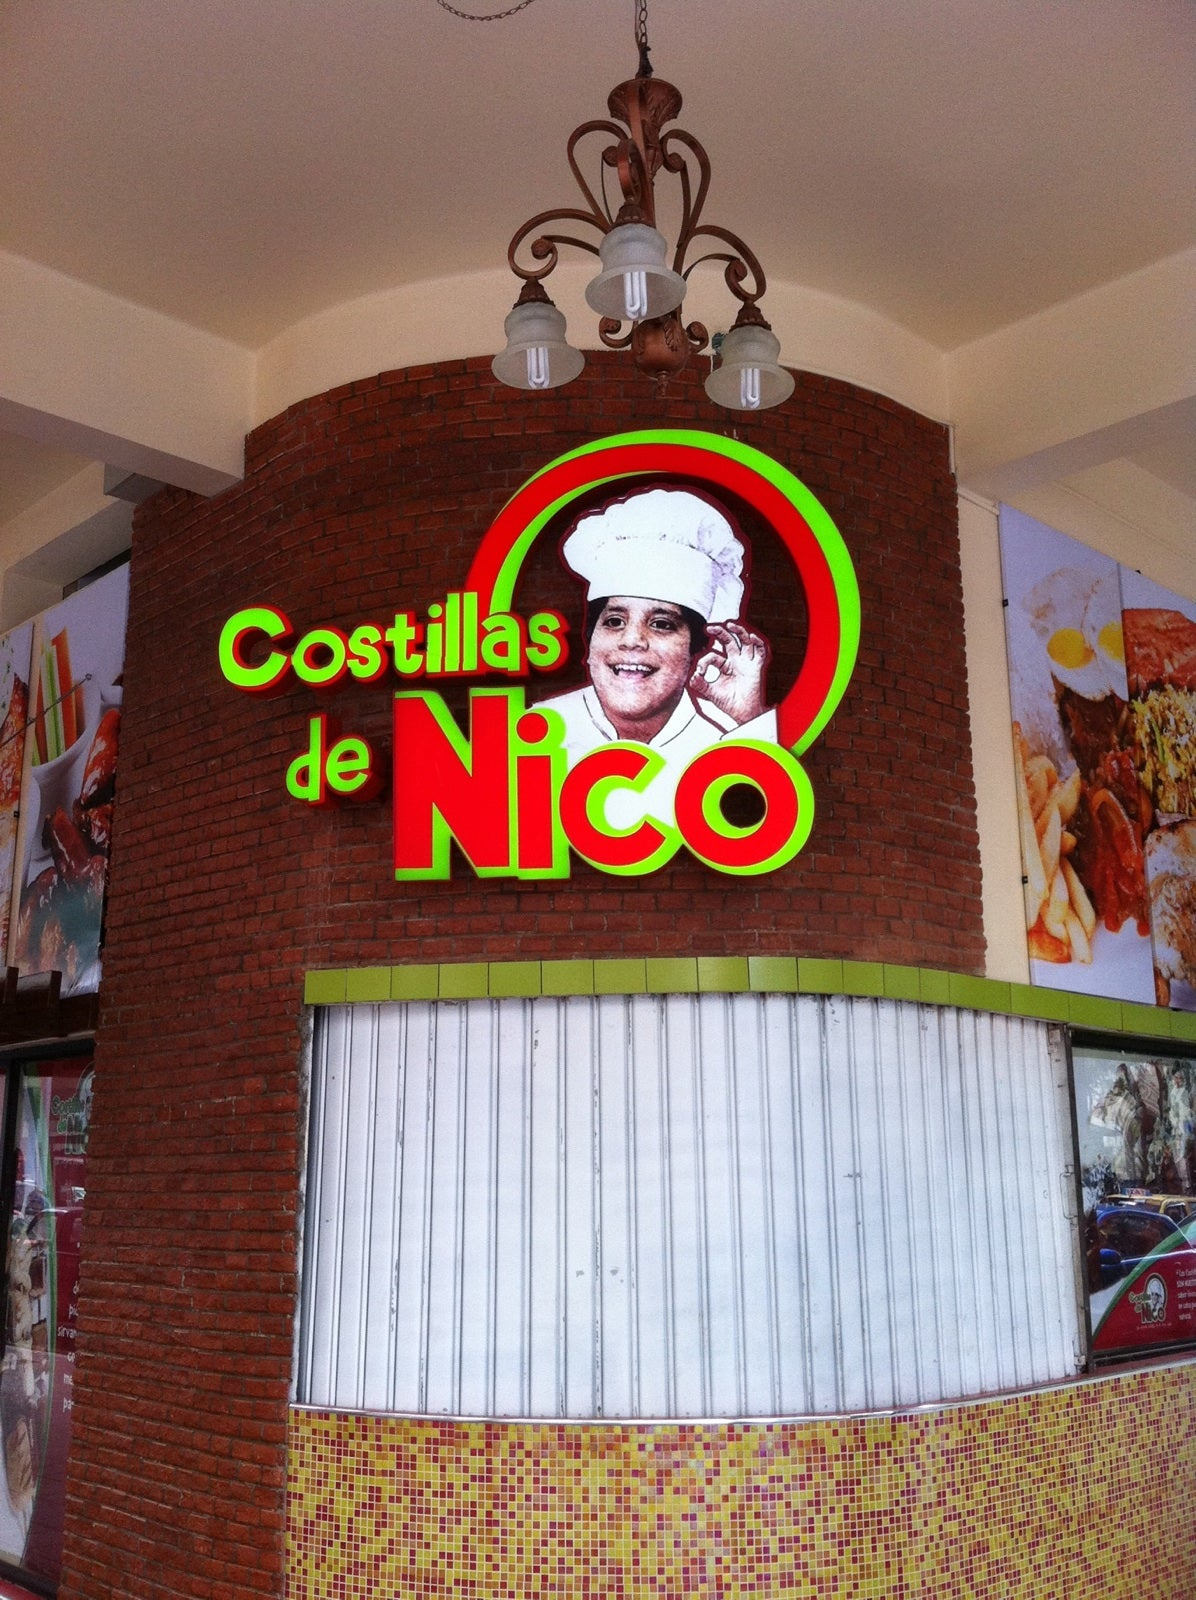 Costillas de Nico